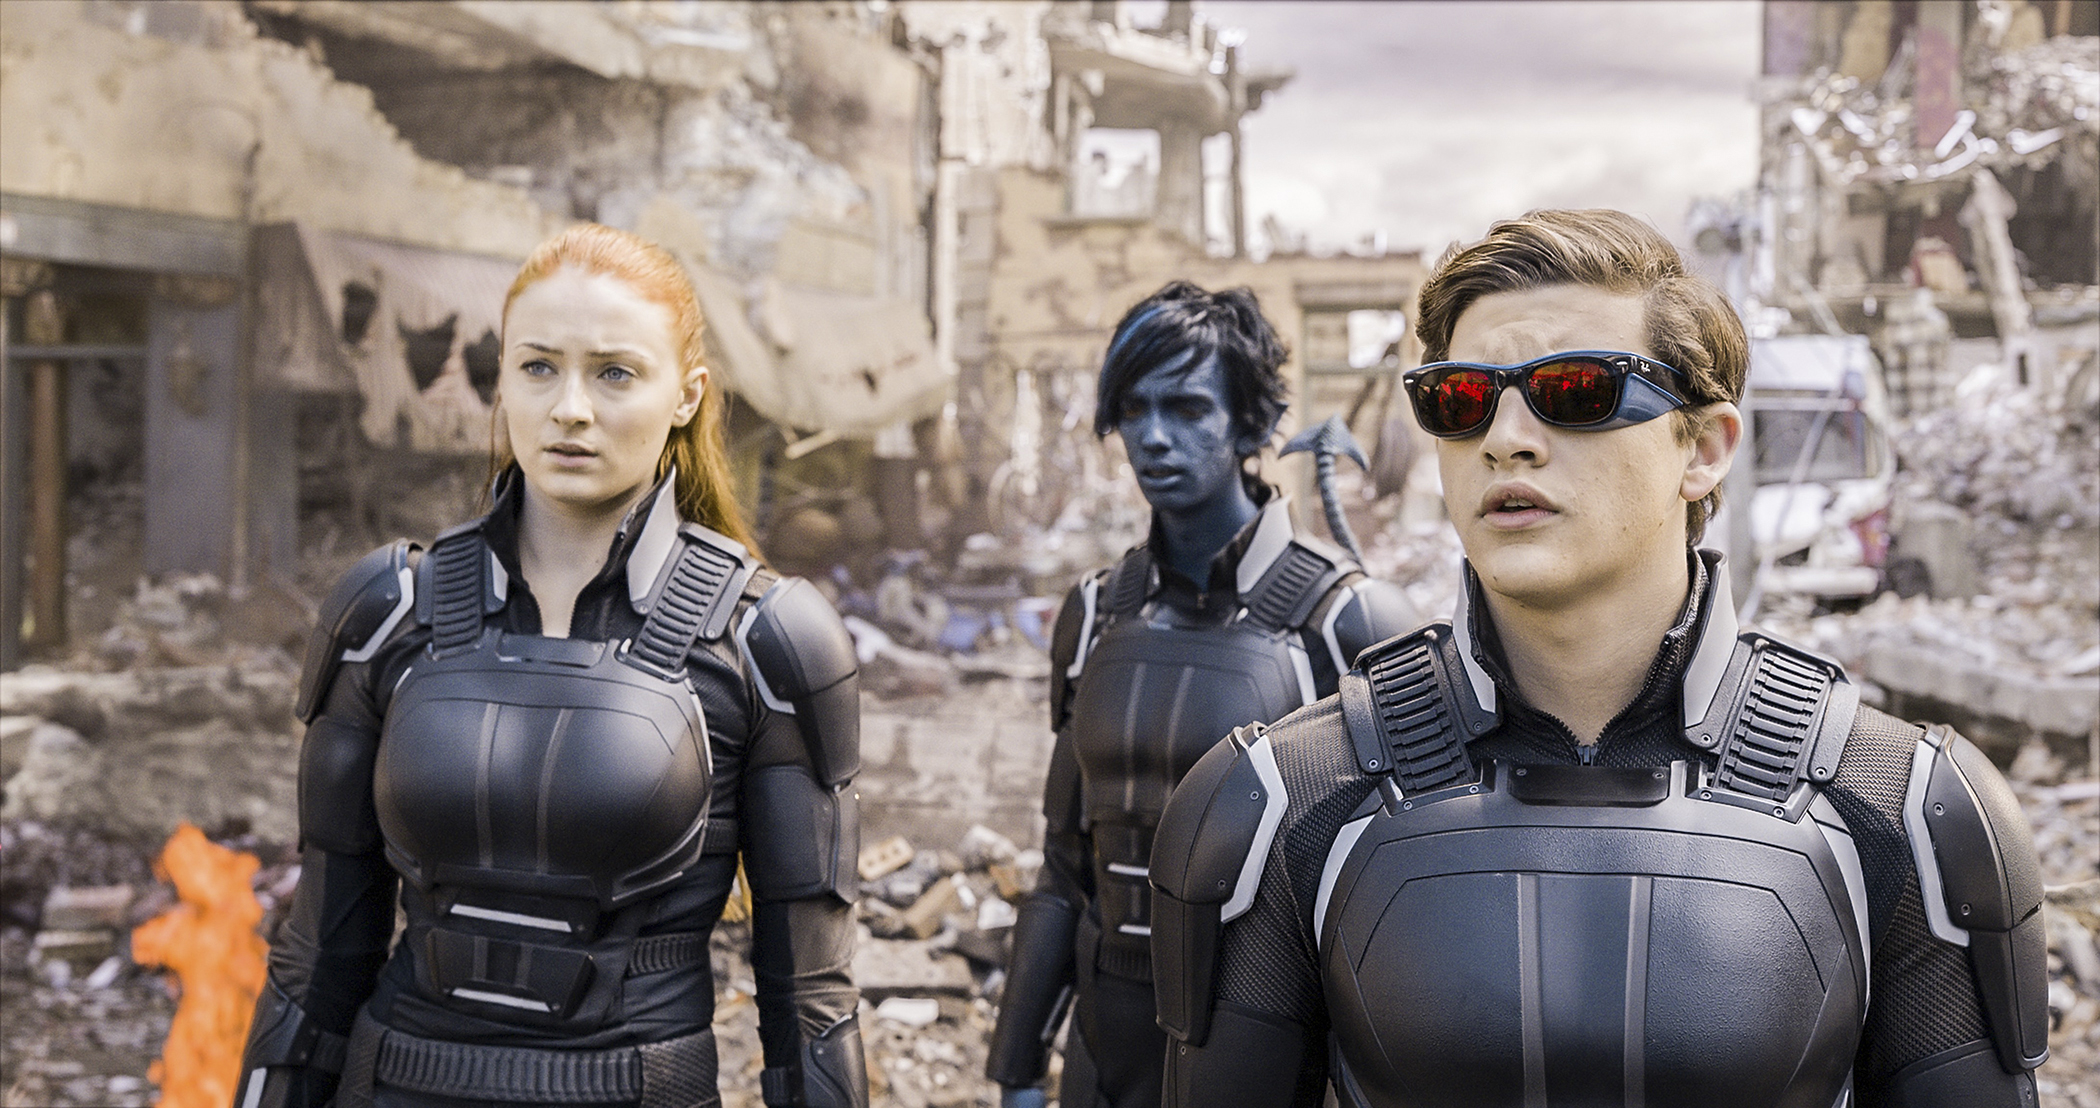 We're Giving Away a Copy of X-MEN: APOCALYPSE!